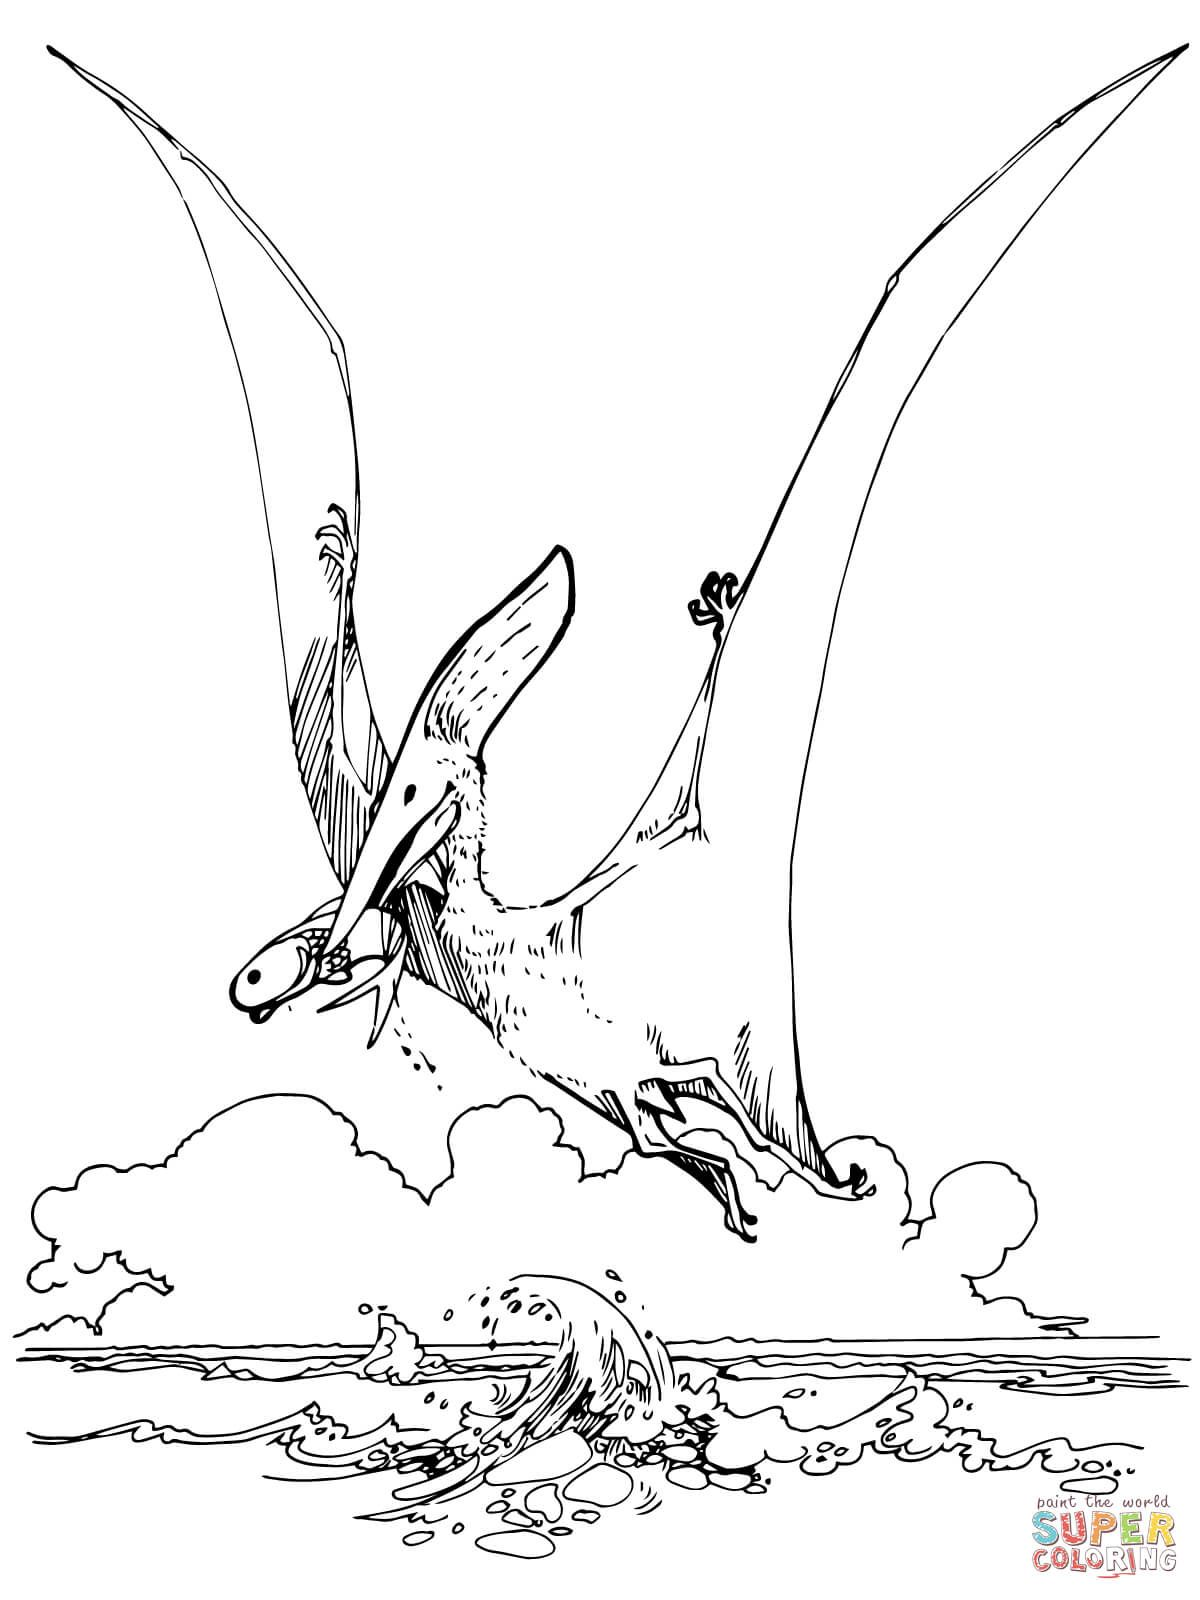 Pteranodon Pterosaur Dinosaur Coloring Pages Dinosaur Coloring Coloring Pages